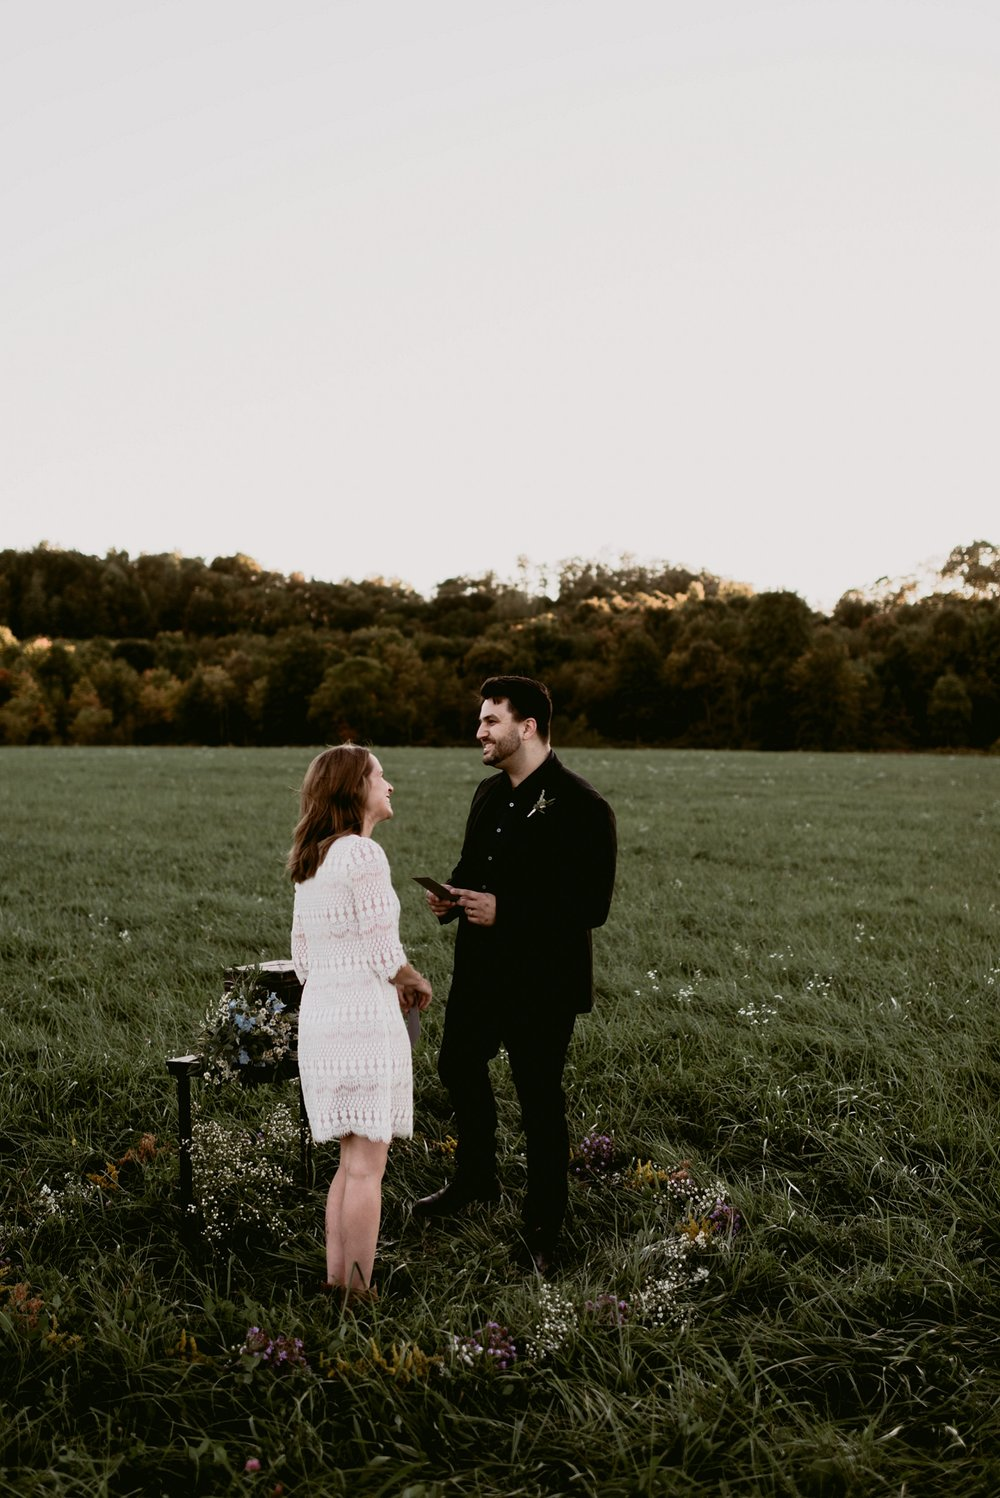 Wildflower-Field-Elopement-Vow-Renewal_Lisa+Chad_MJPHOTO-181.JPG